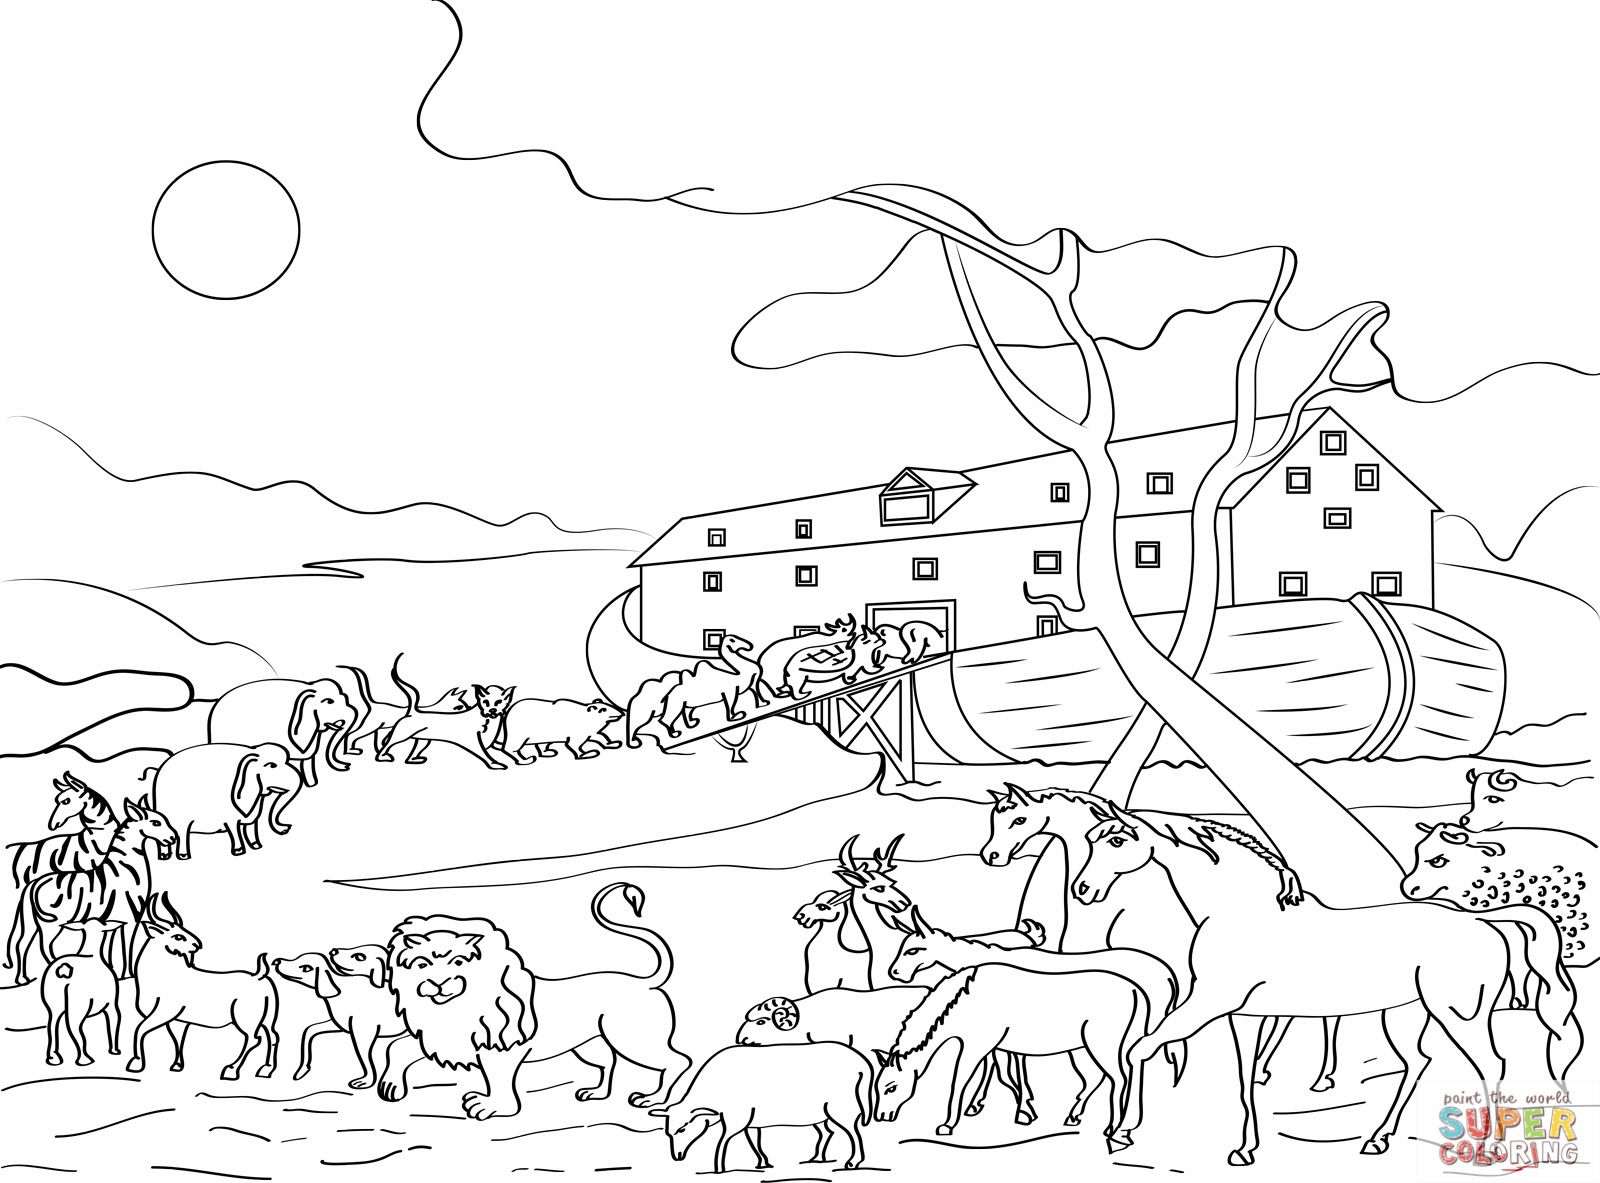 animals loading noahs ark coloring pages online - Noahs Ark Coloring Page 2